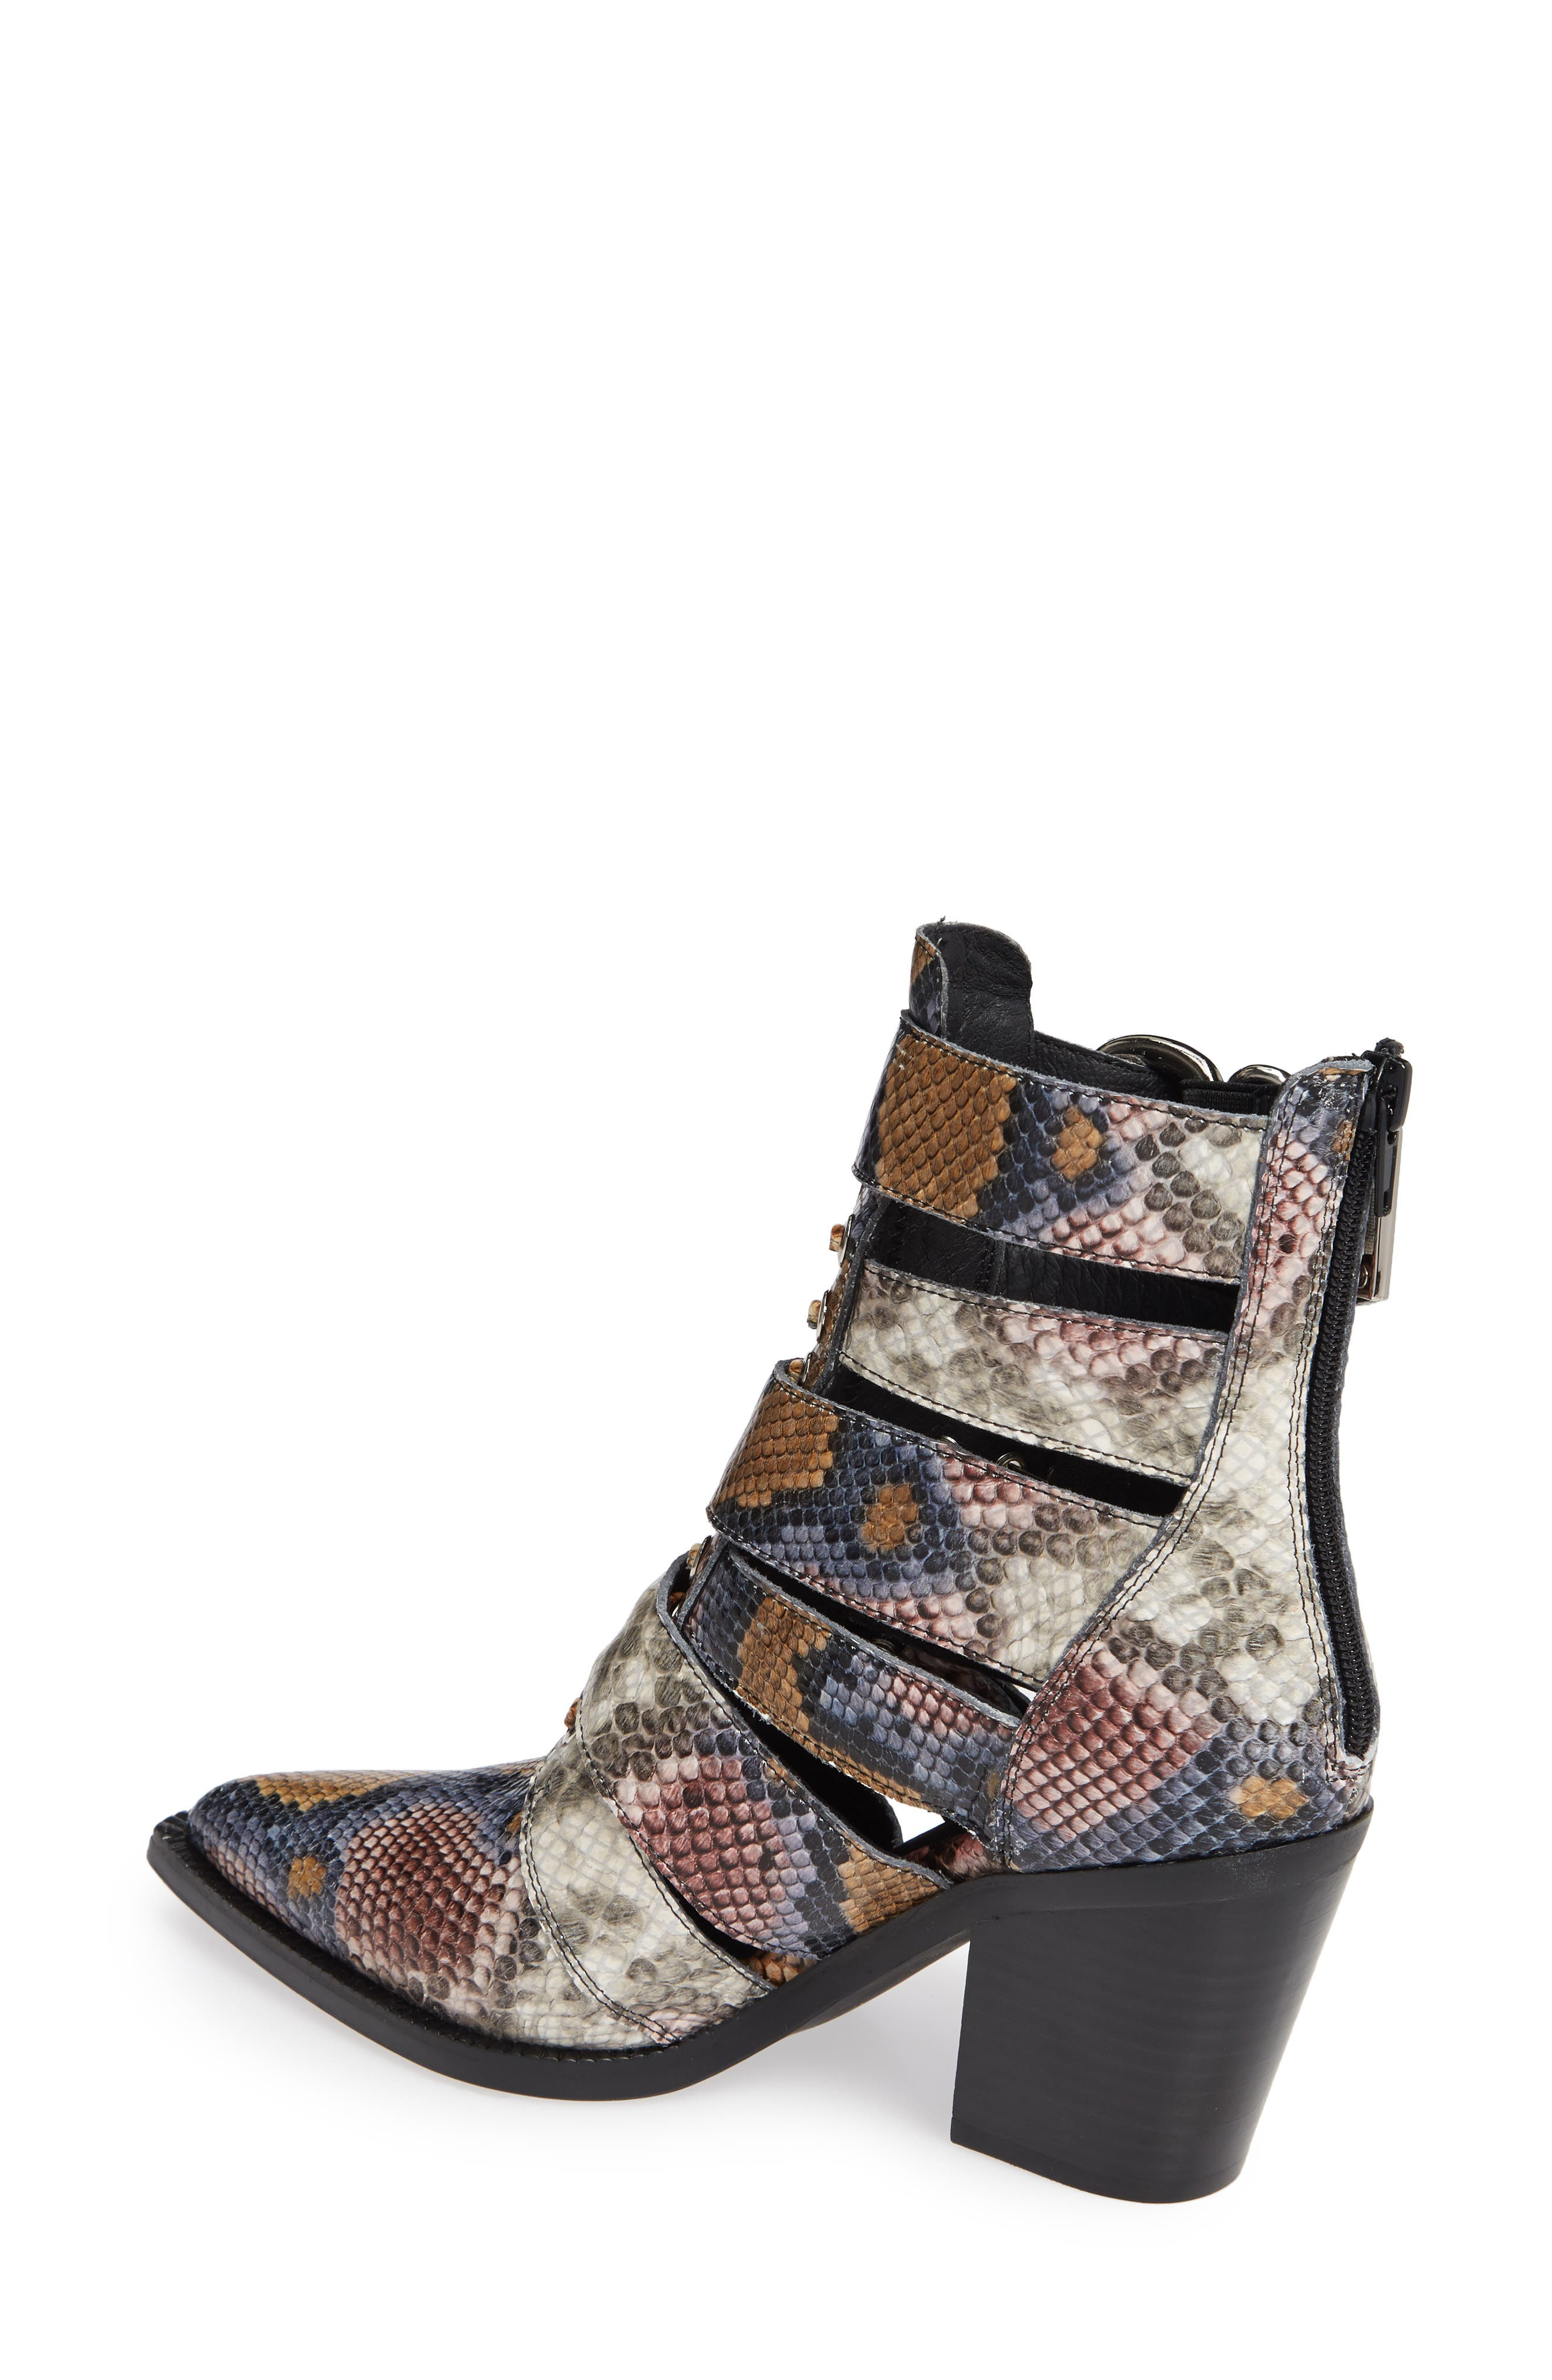 Caceres Bootie,                             Alternate thumbnail 2, color,                             GREY WINE SNAKE PRINT